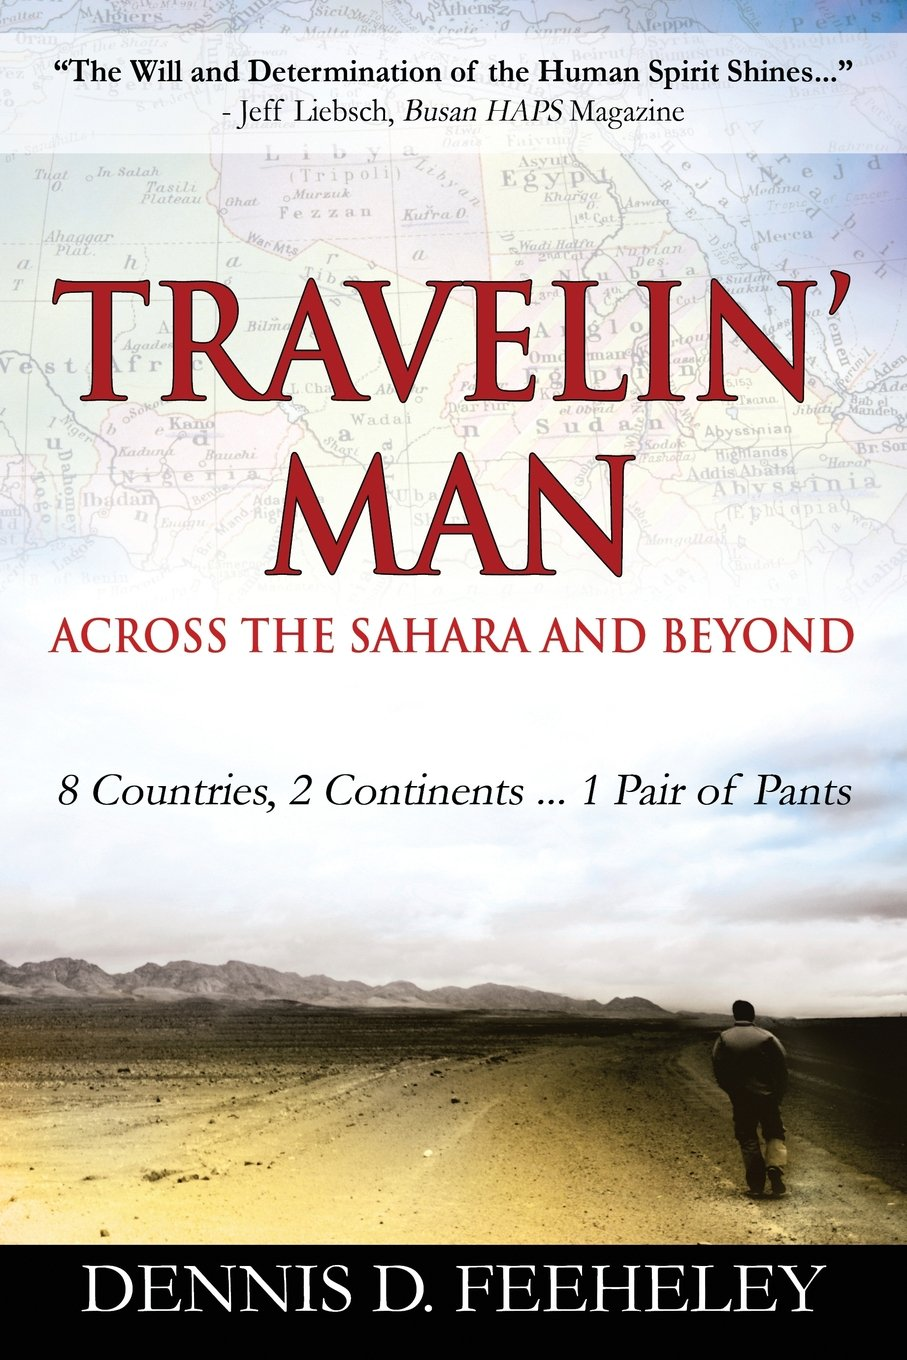 Read Online TRAVELIN' MAN Across the Sahara and Beyond: 8 Countries, 2 Continents...1 Pair of Pants pdf